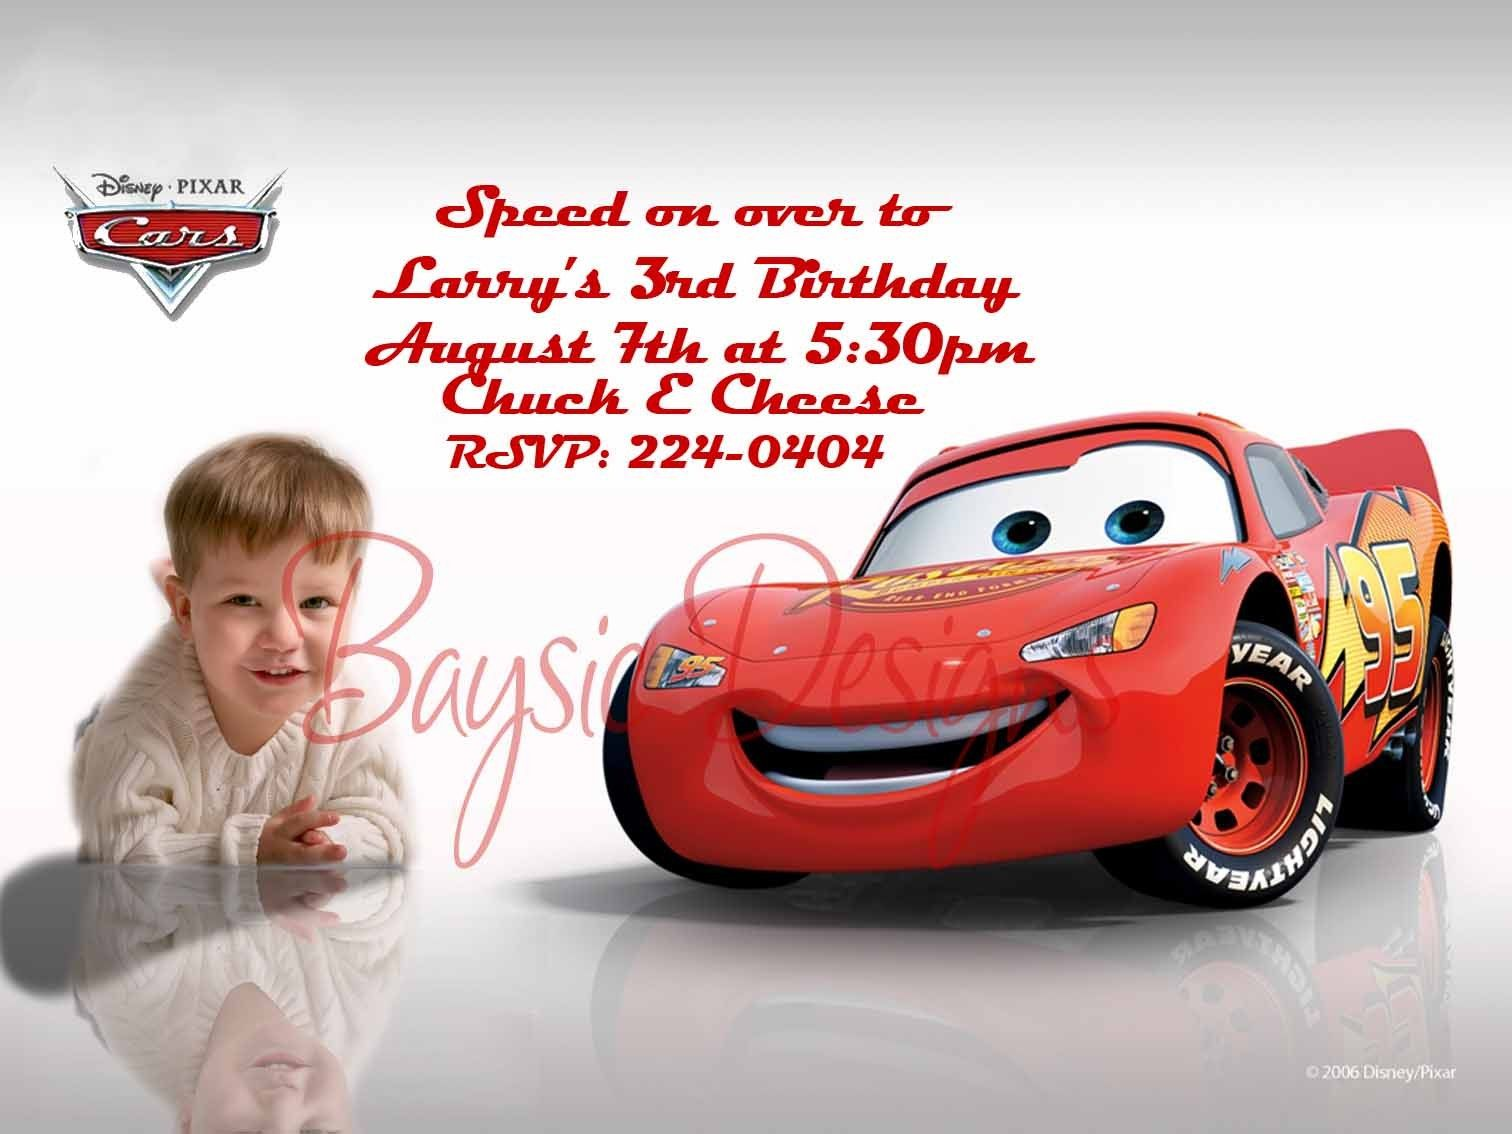 images about party invites red white blue 1000 images about party invites red white blue vintage airplane theme and cars